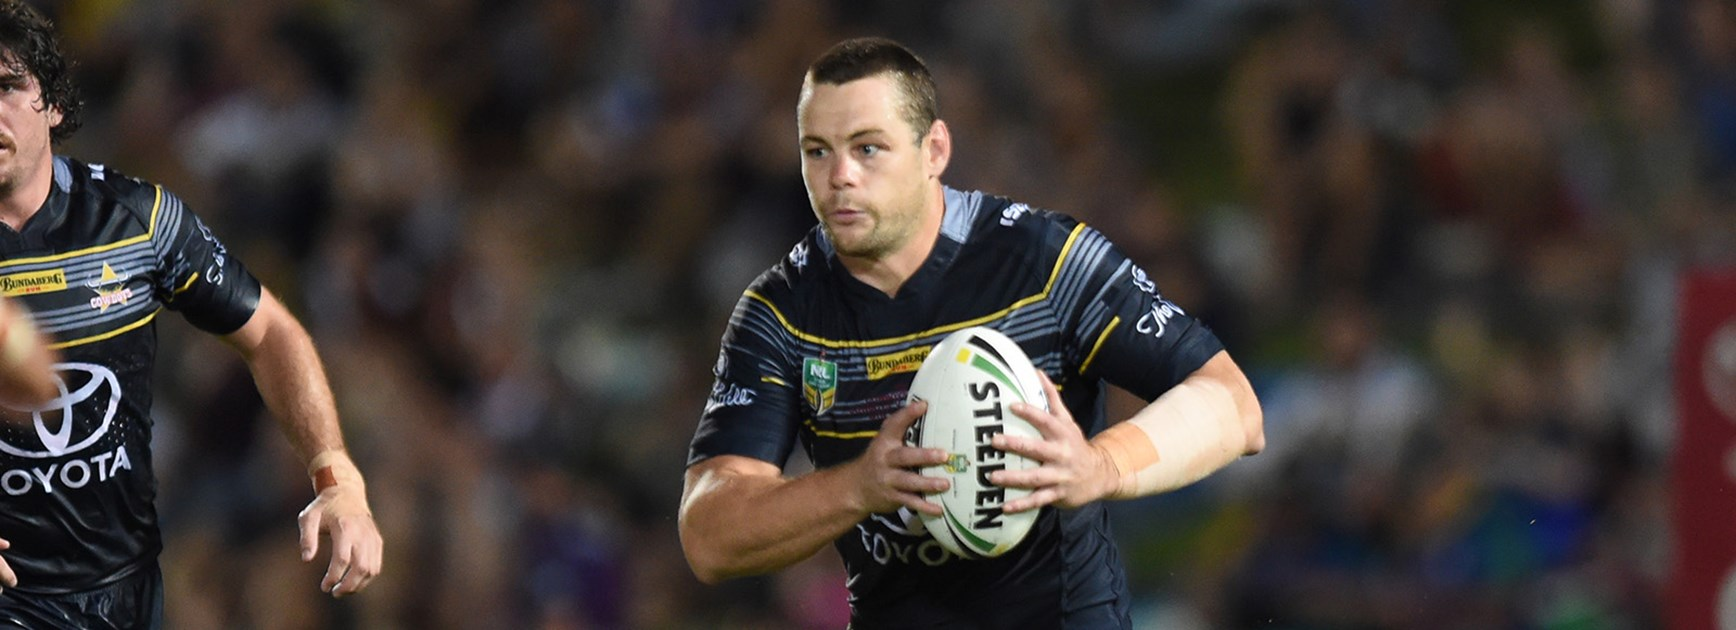 Shaun Fensom made his Cowboys debut against Manly in Round 3.